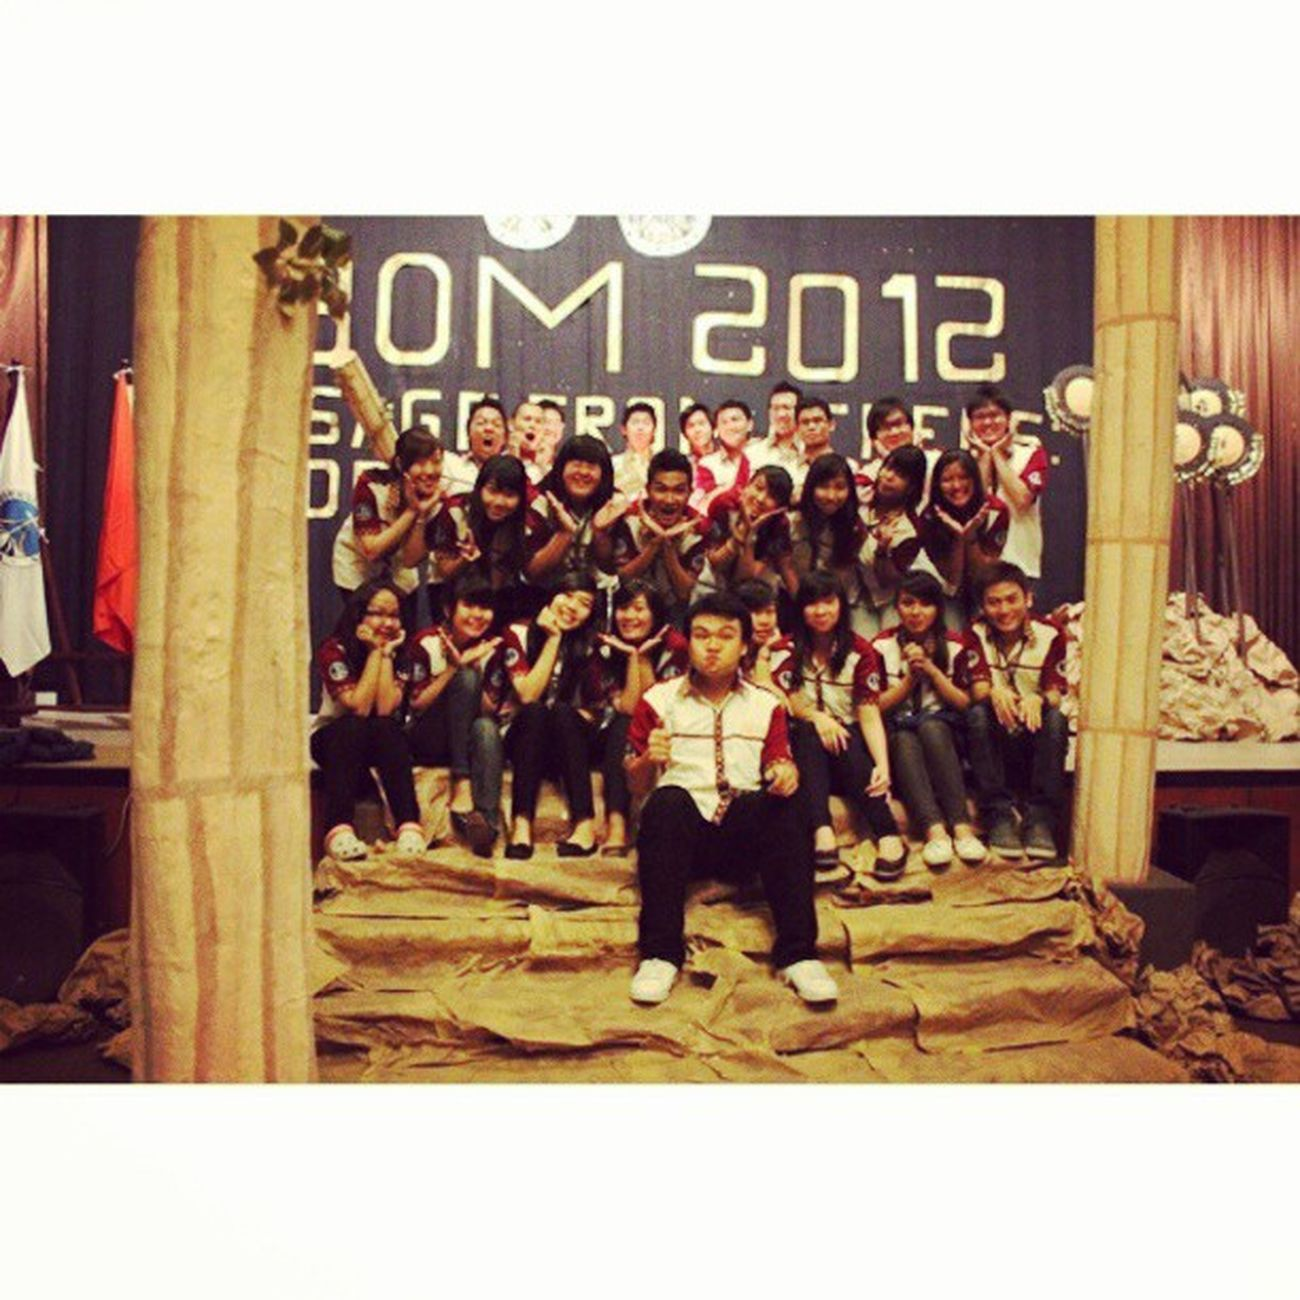 BOM2012 Memory Bempeople UKP love hug friends awesome teamwork family famous